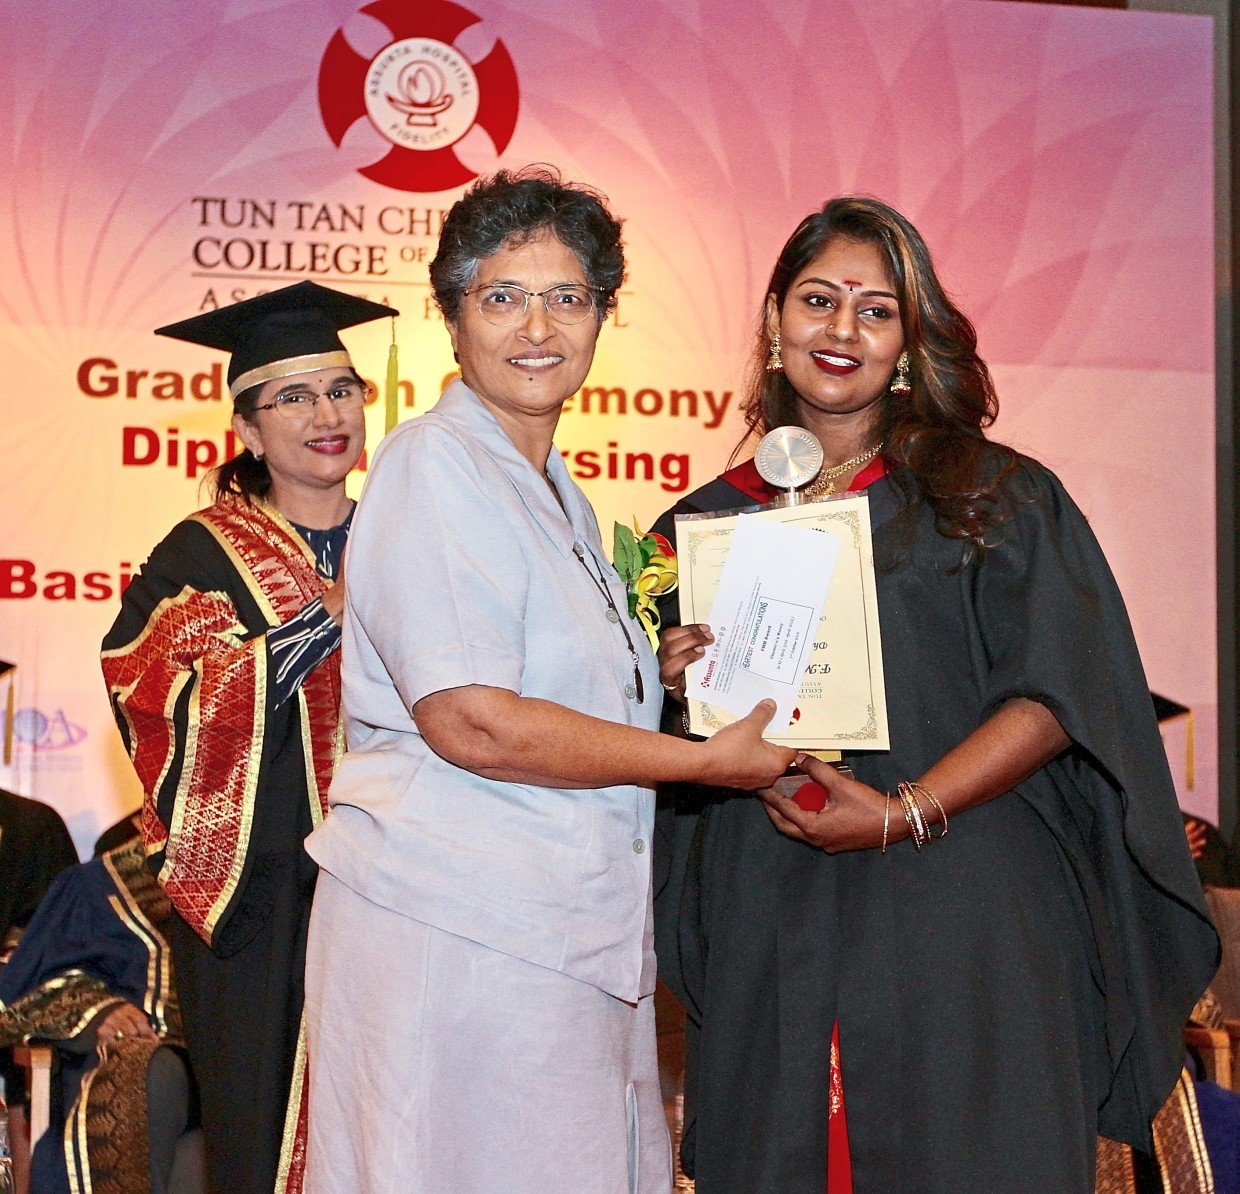 (From left) Theresa witnessing Sister Susan (in grey) present the FMM special award to Dharsini at the graduation ceremony in Petaling Jaya.